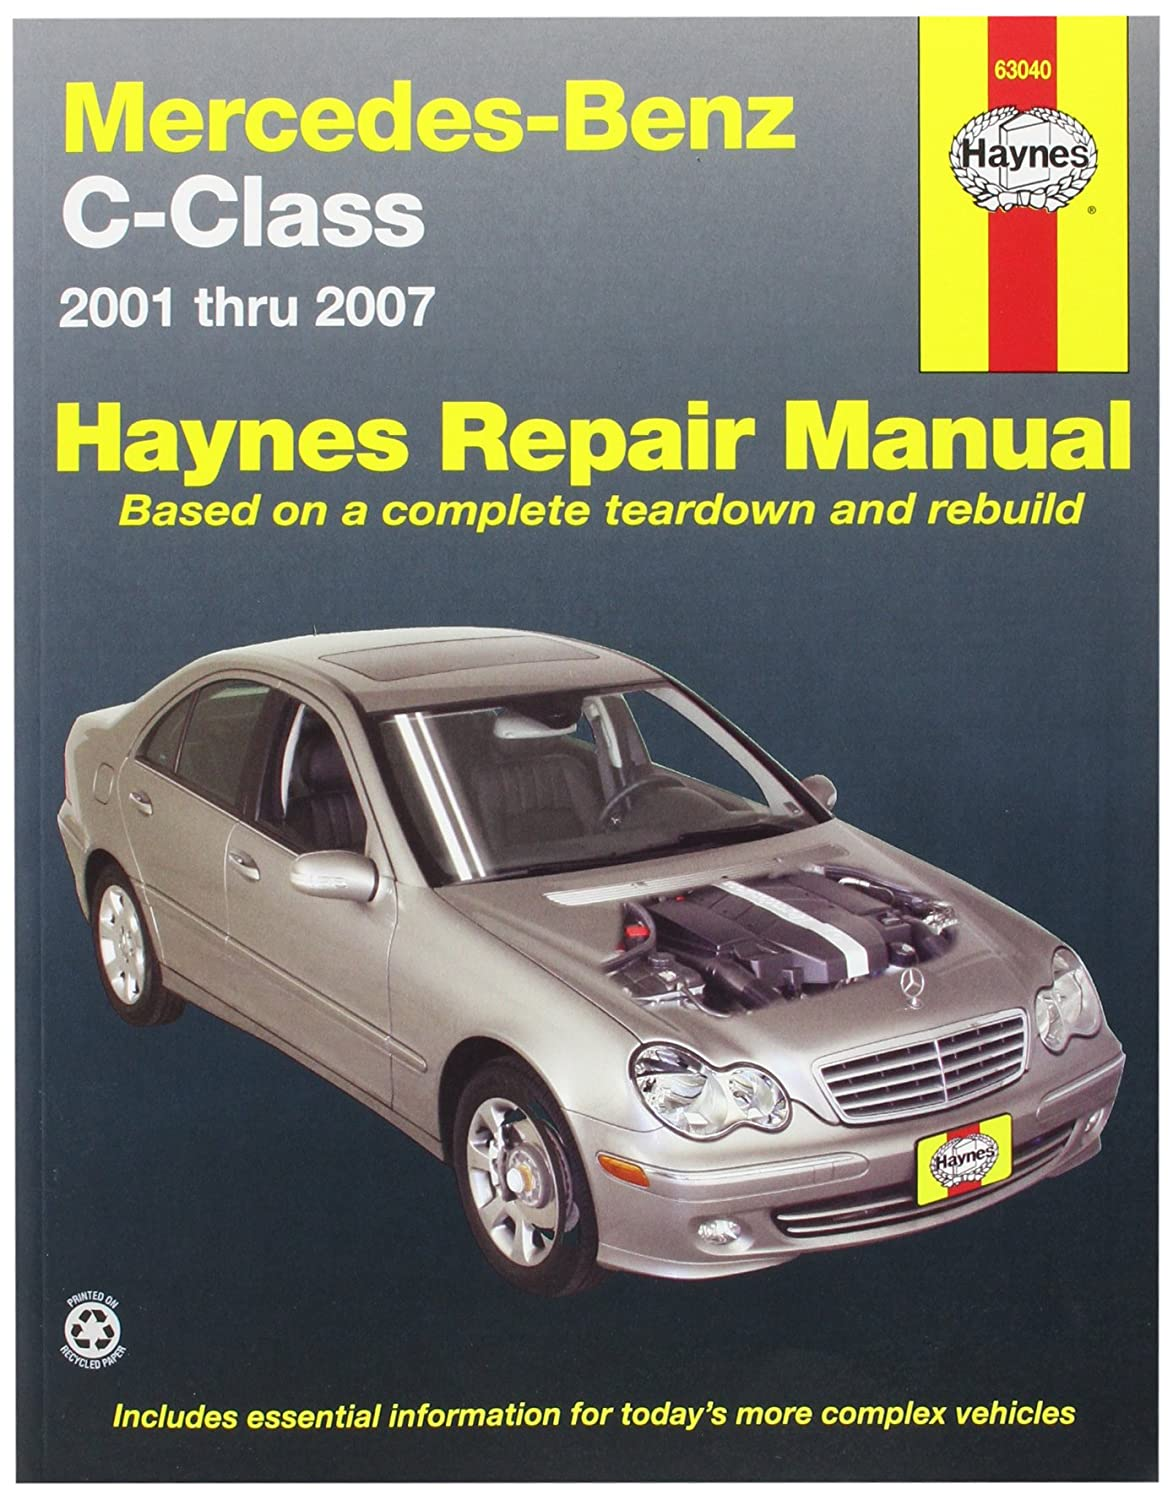 Amazon.com: Automotive Repair Manual for Mercedes-Benz C-Class, '01 thru  '07 (63040): Automotive